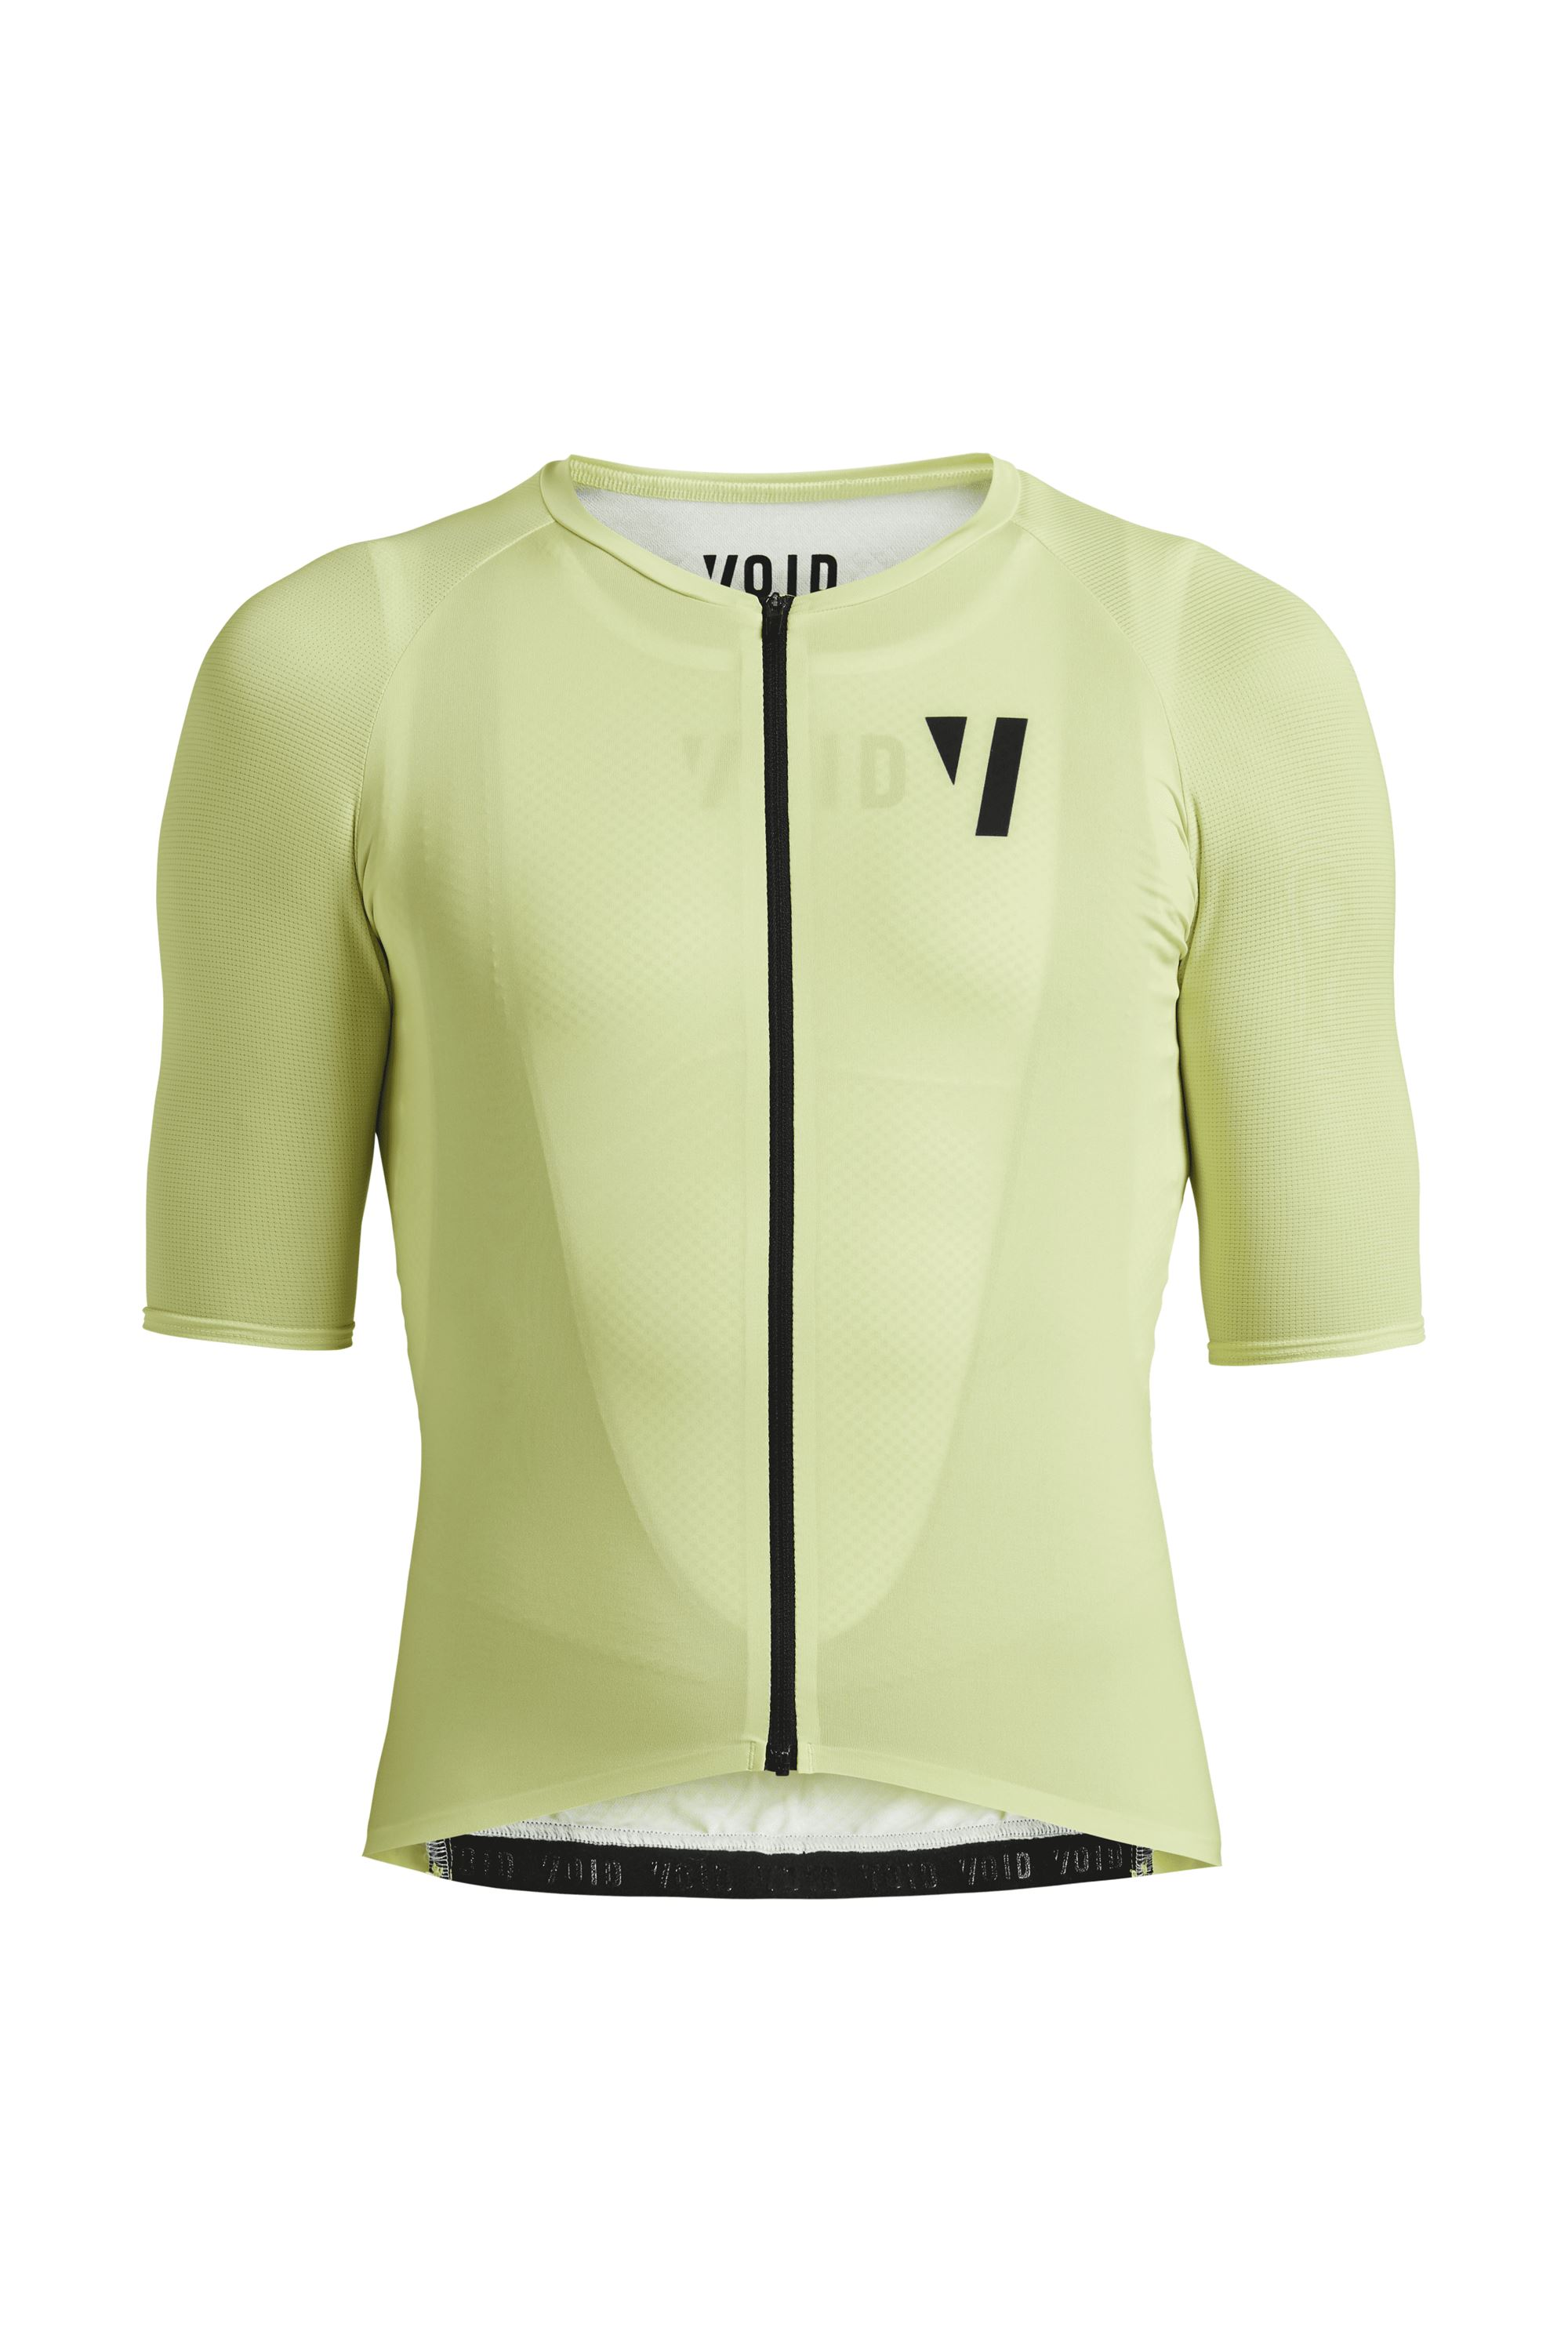 VOID VENT JERSEY YELLOW